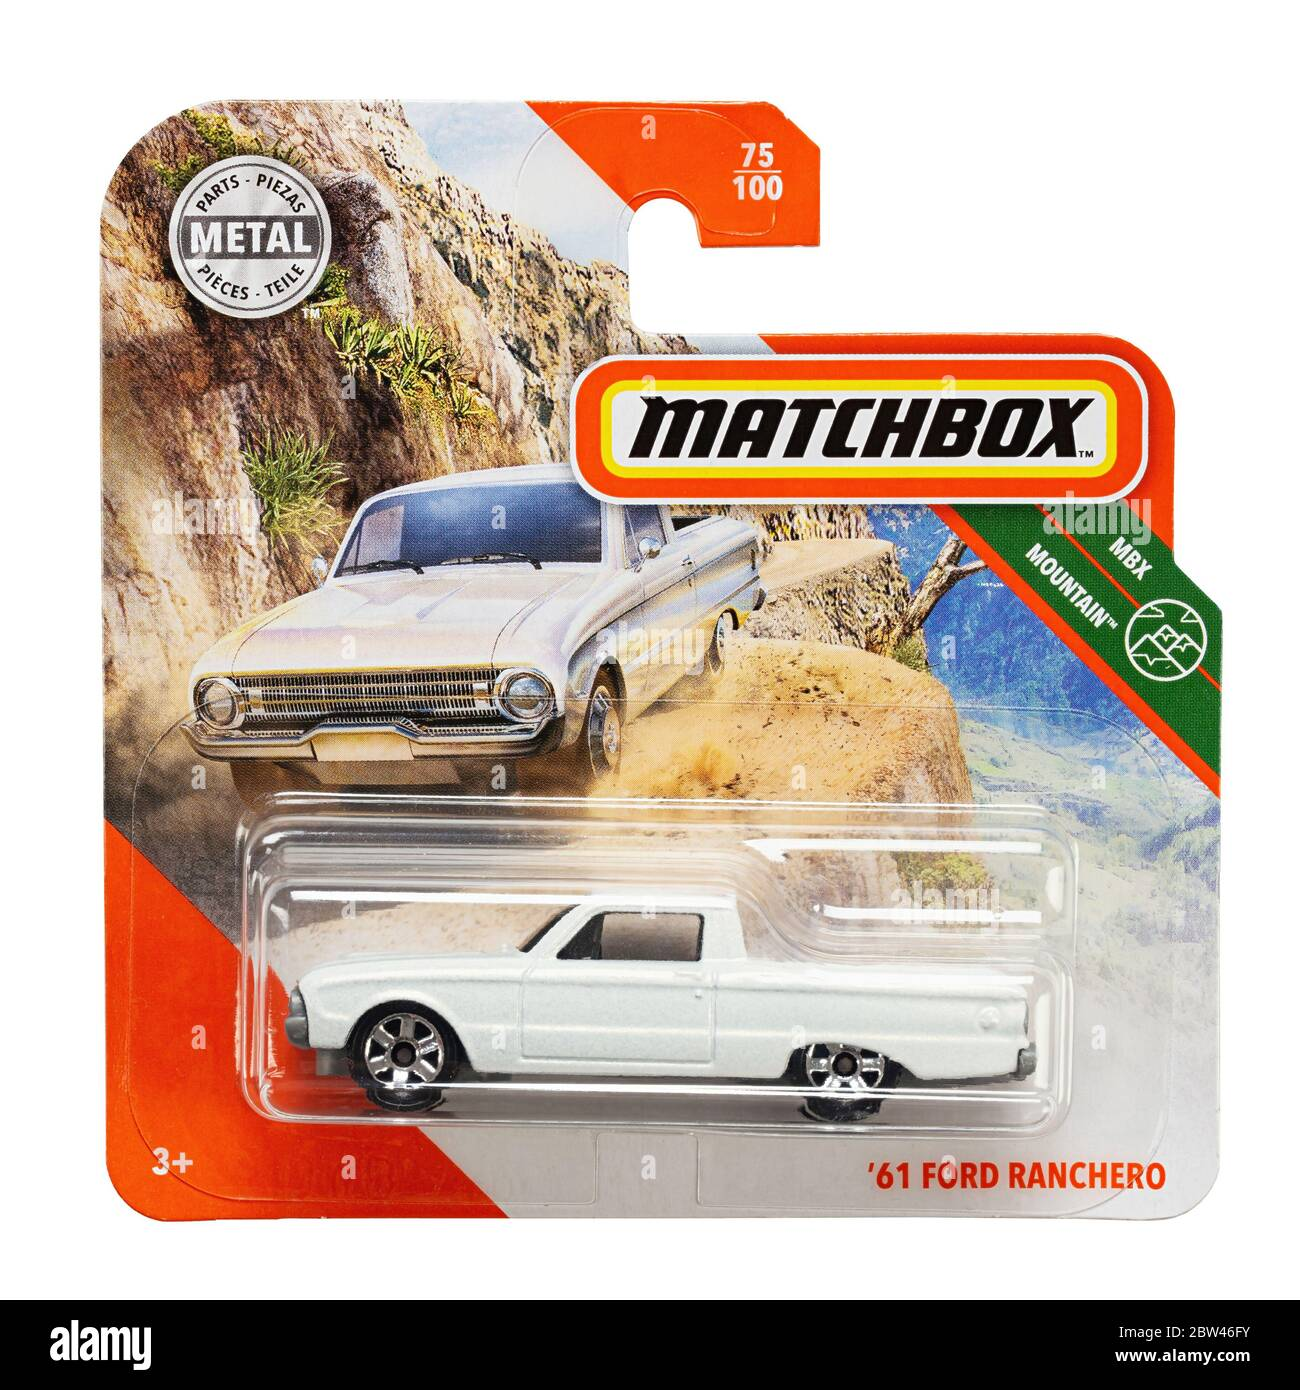 Ukraine, Kyiv - may 19. 2020:Toy car model 61 Ford Ranchero. Matchbox is a popular British toy brand that was introduced by Lesney Products in 1953 an Stock Photo